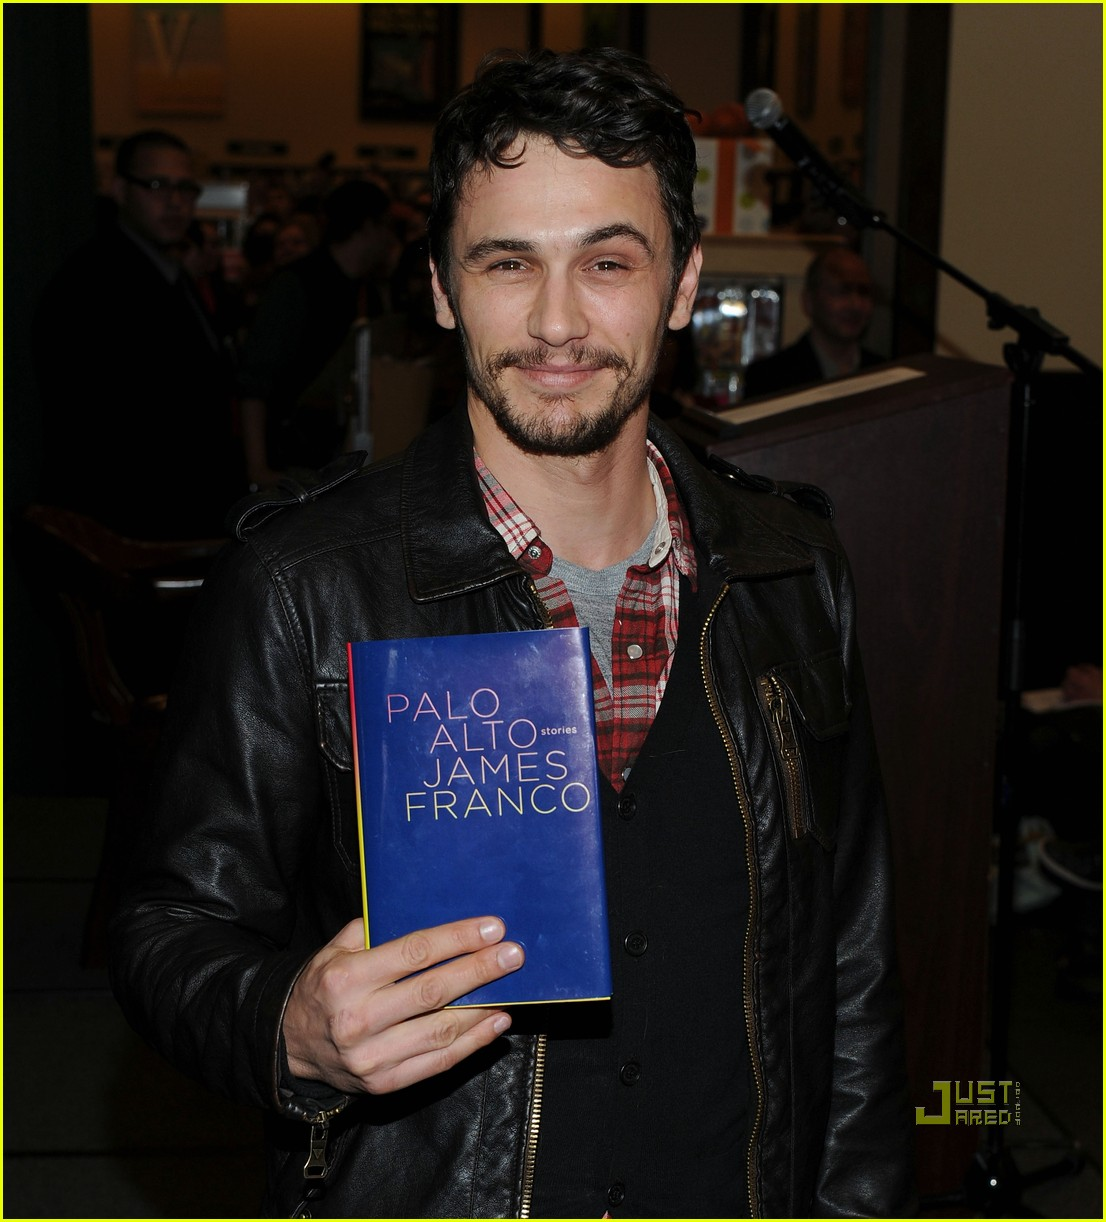 Full Sized Photo Of James Franco Palo Alto 10 Photo border=